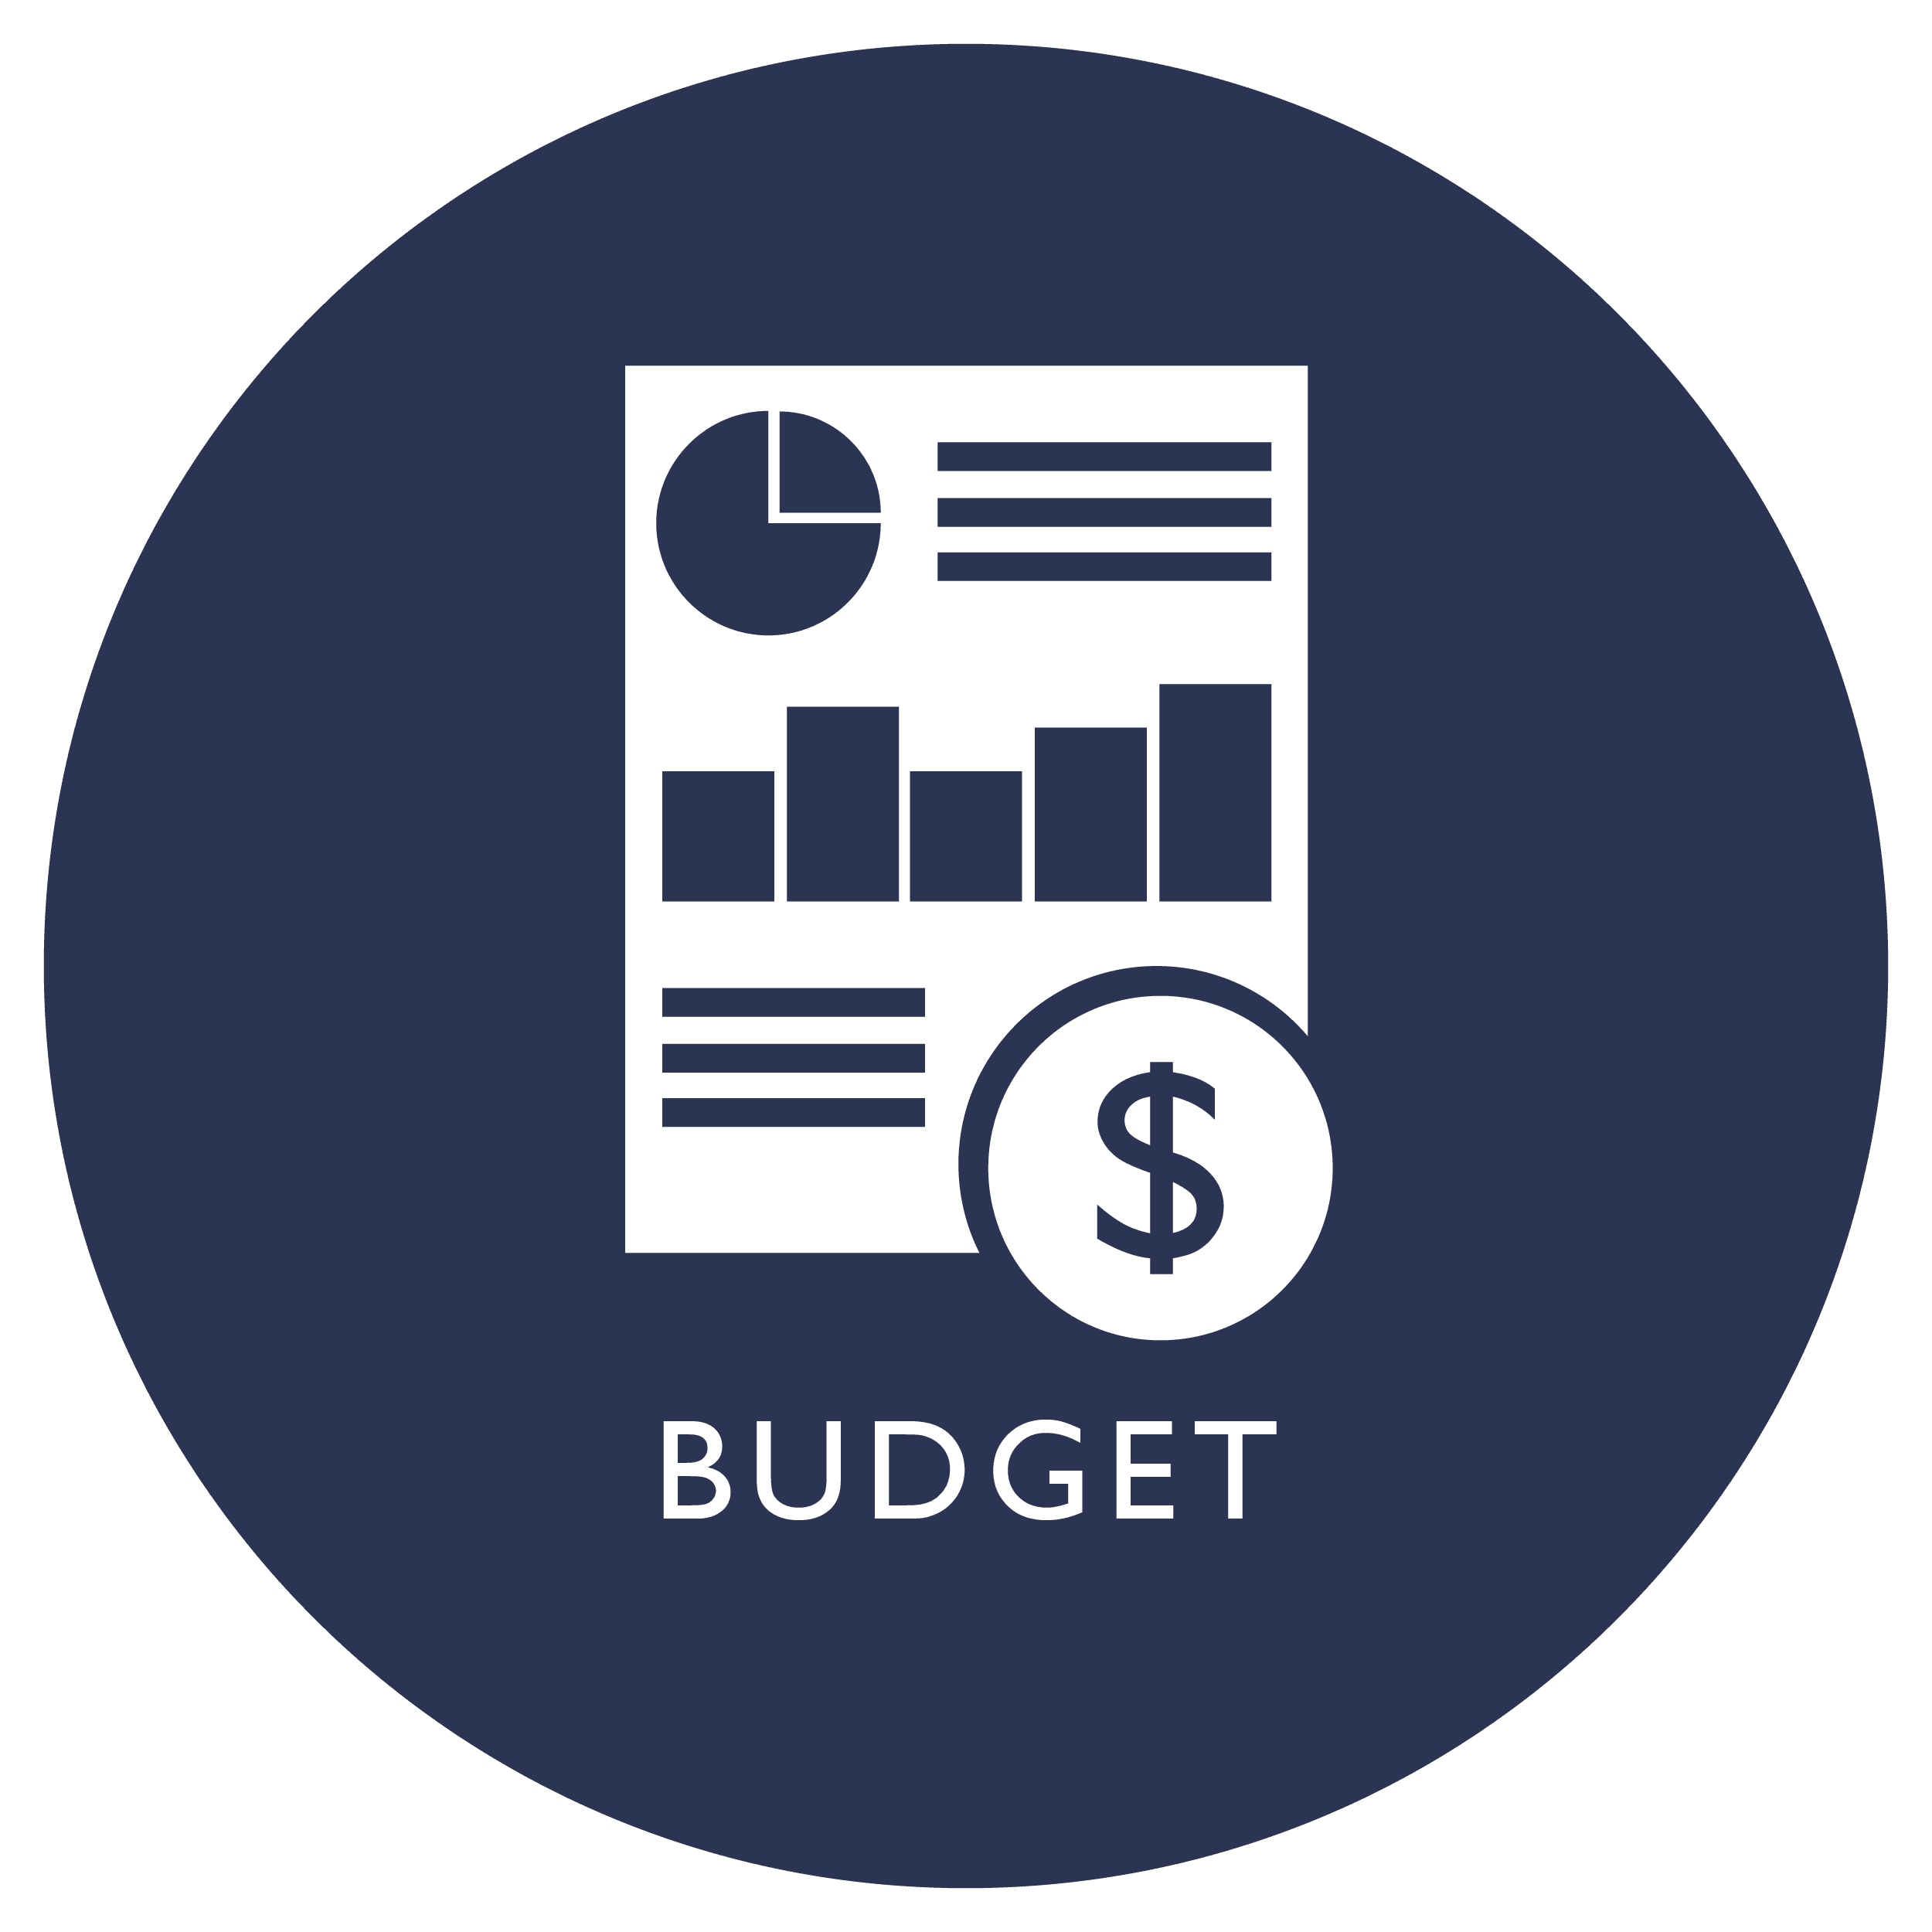 Budget-01 Opens in new window